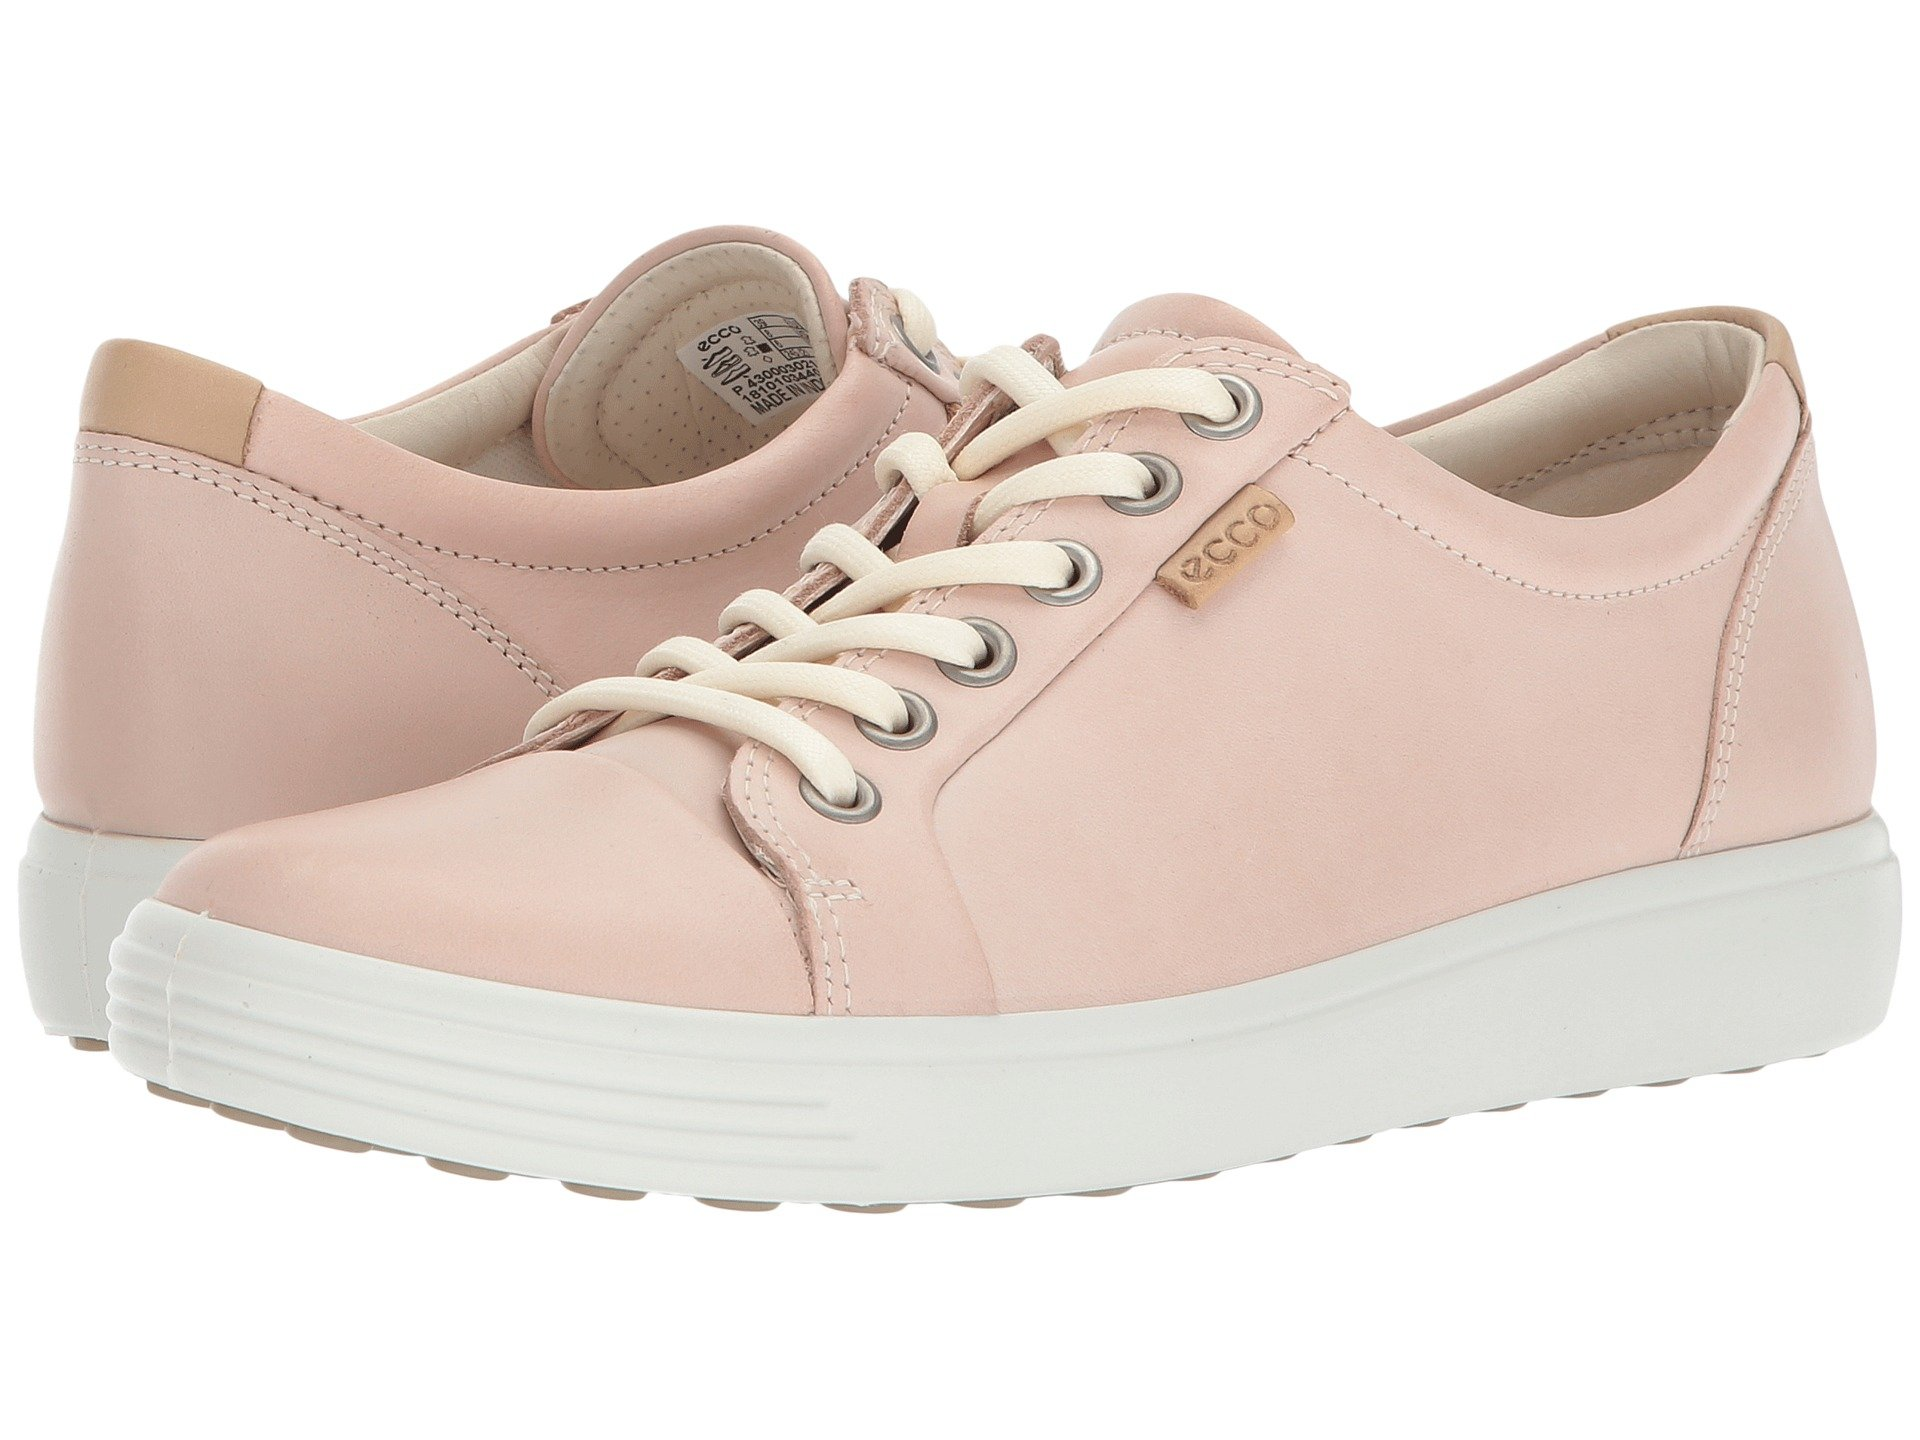 cheapest place to buy ecco shoes